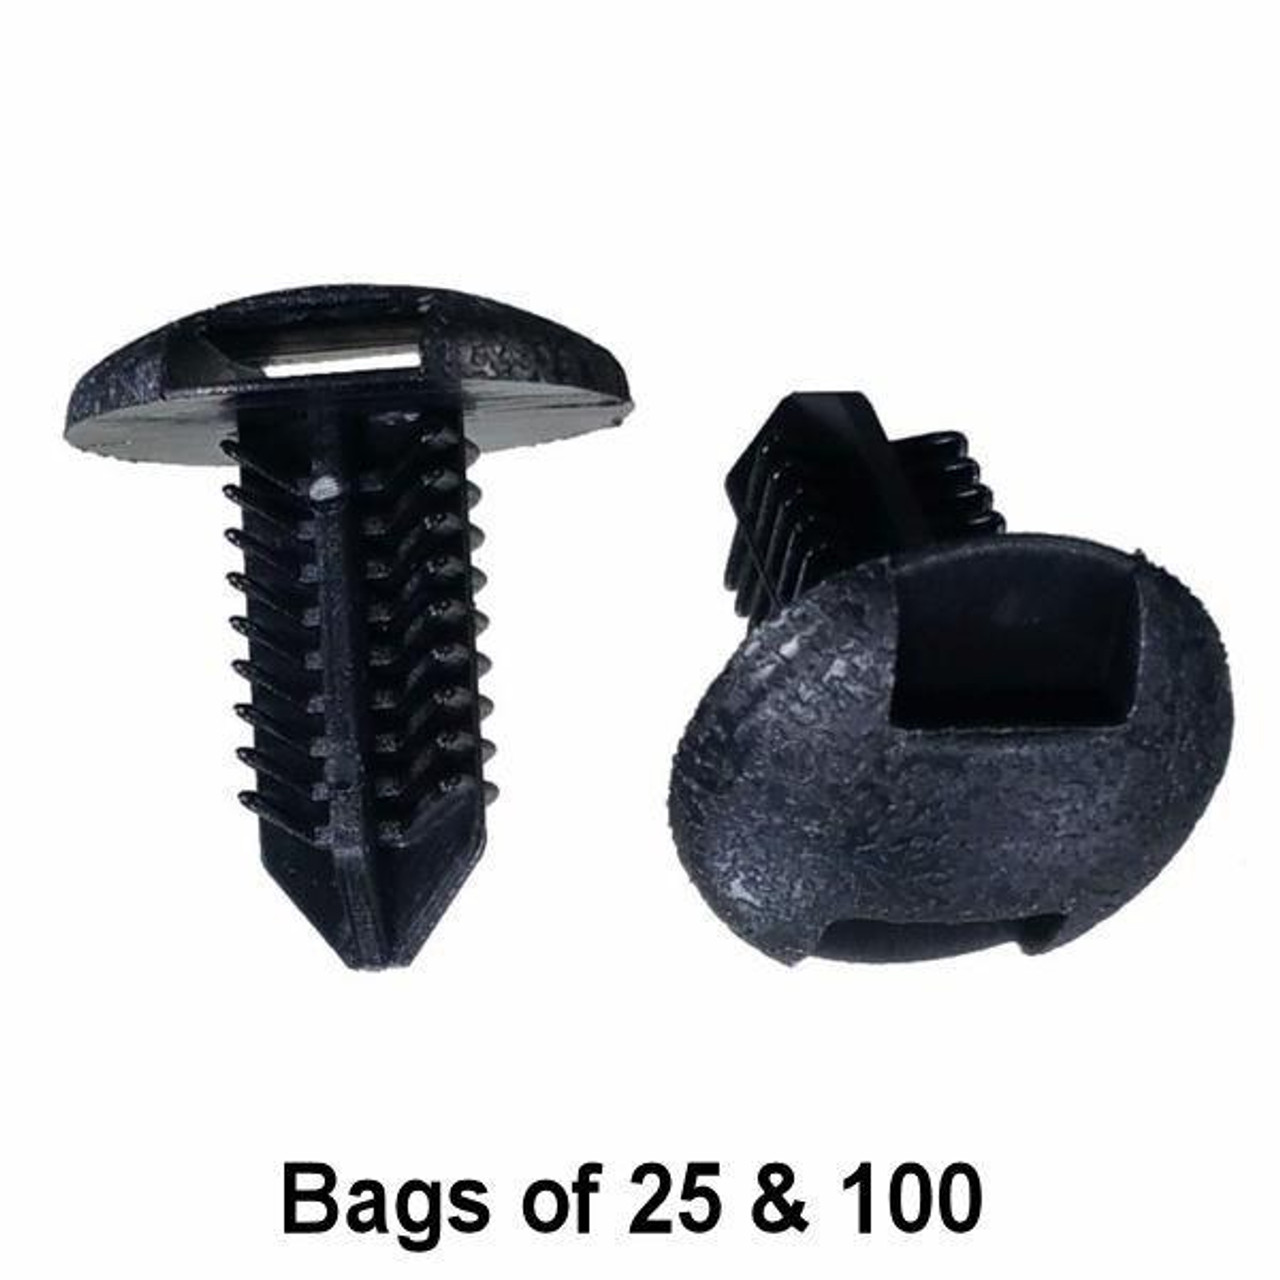 Toyota / Lexus Trunk Trim Push Retainer Clip - Interchange: Auveco 20184 Toyota 9046708186